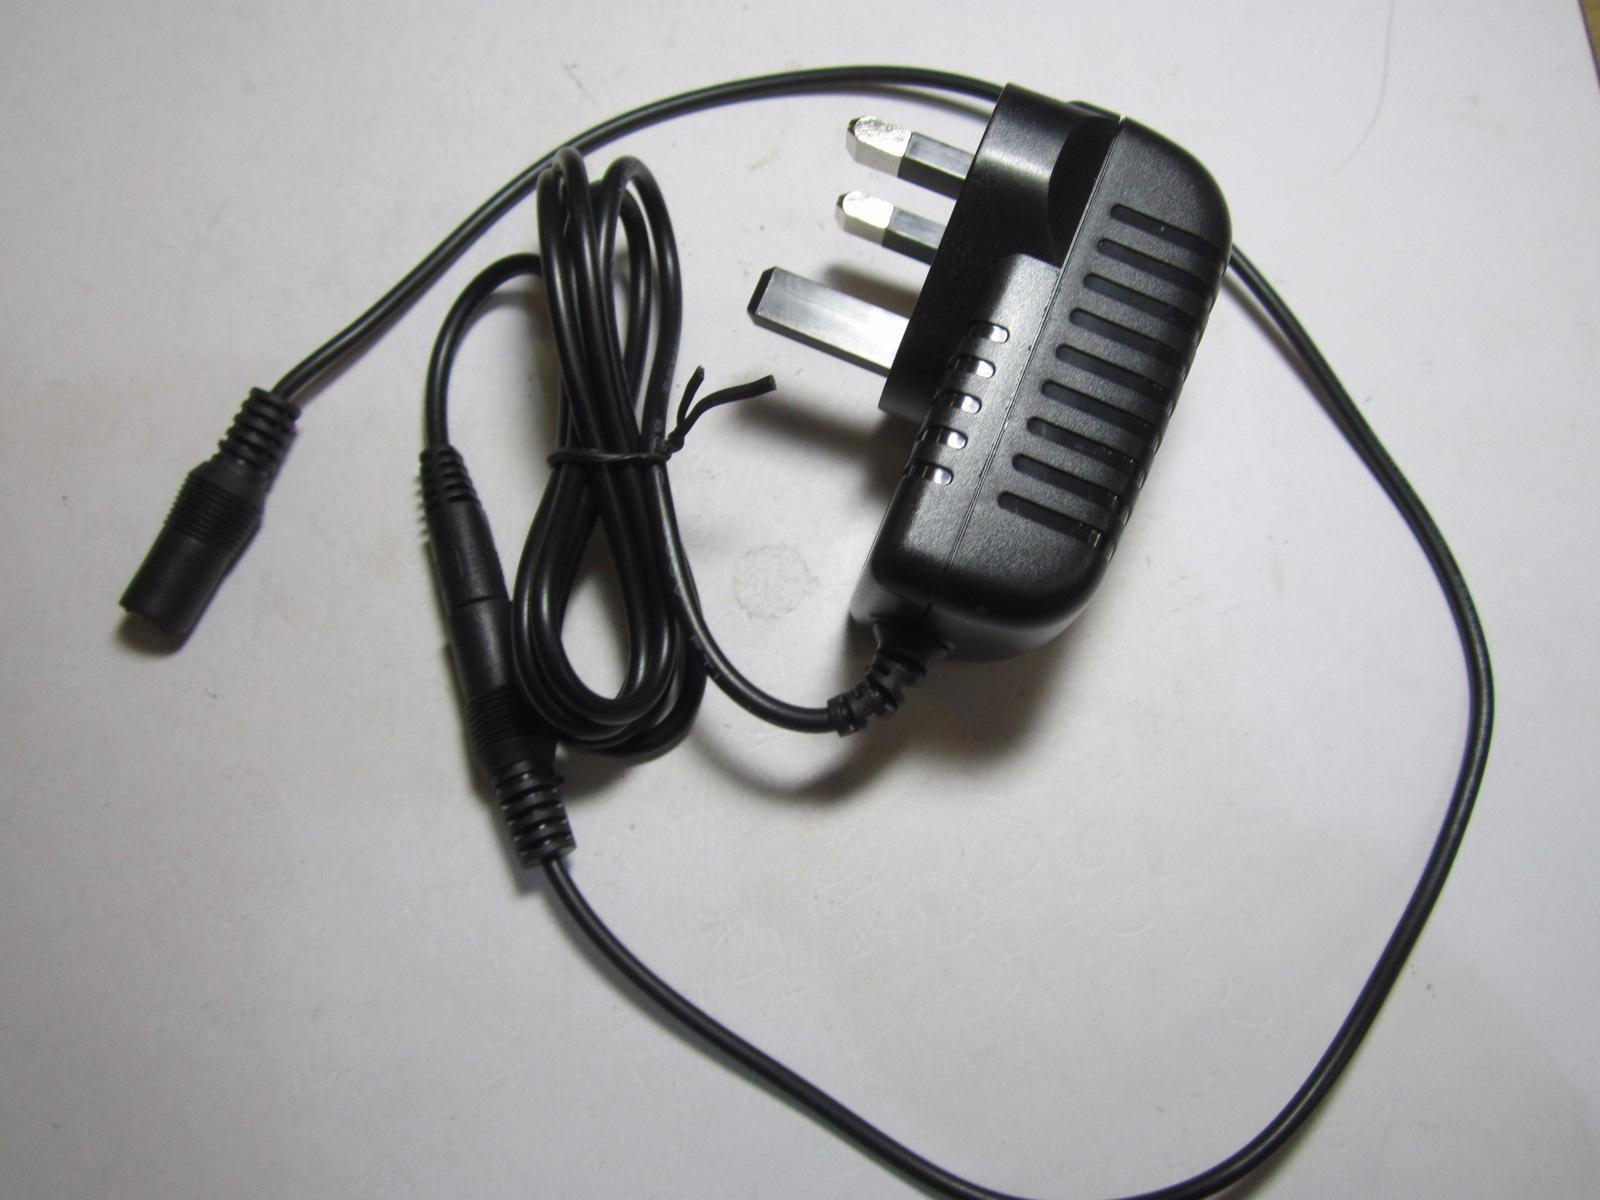 Replacement Power Supply for 7.5V Roberts Revival iStream FM Radio